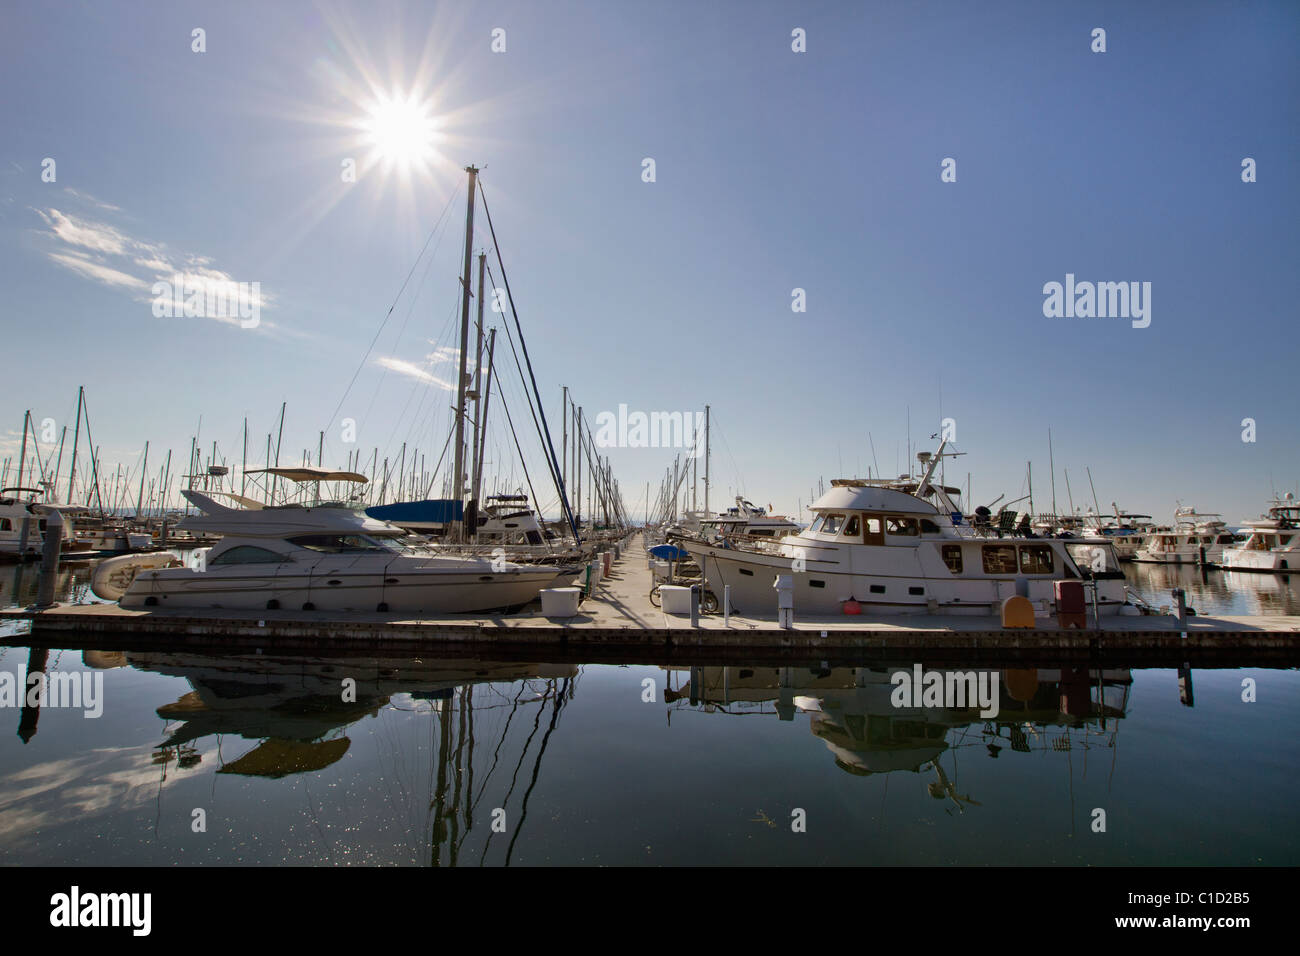 Marina Boat Dock with Clear Blue Sky and Water Reflection 2 - Stock Image